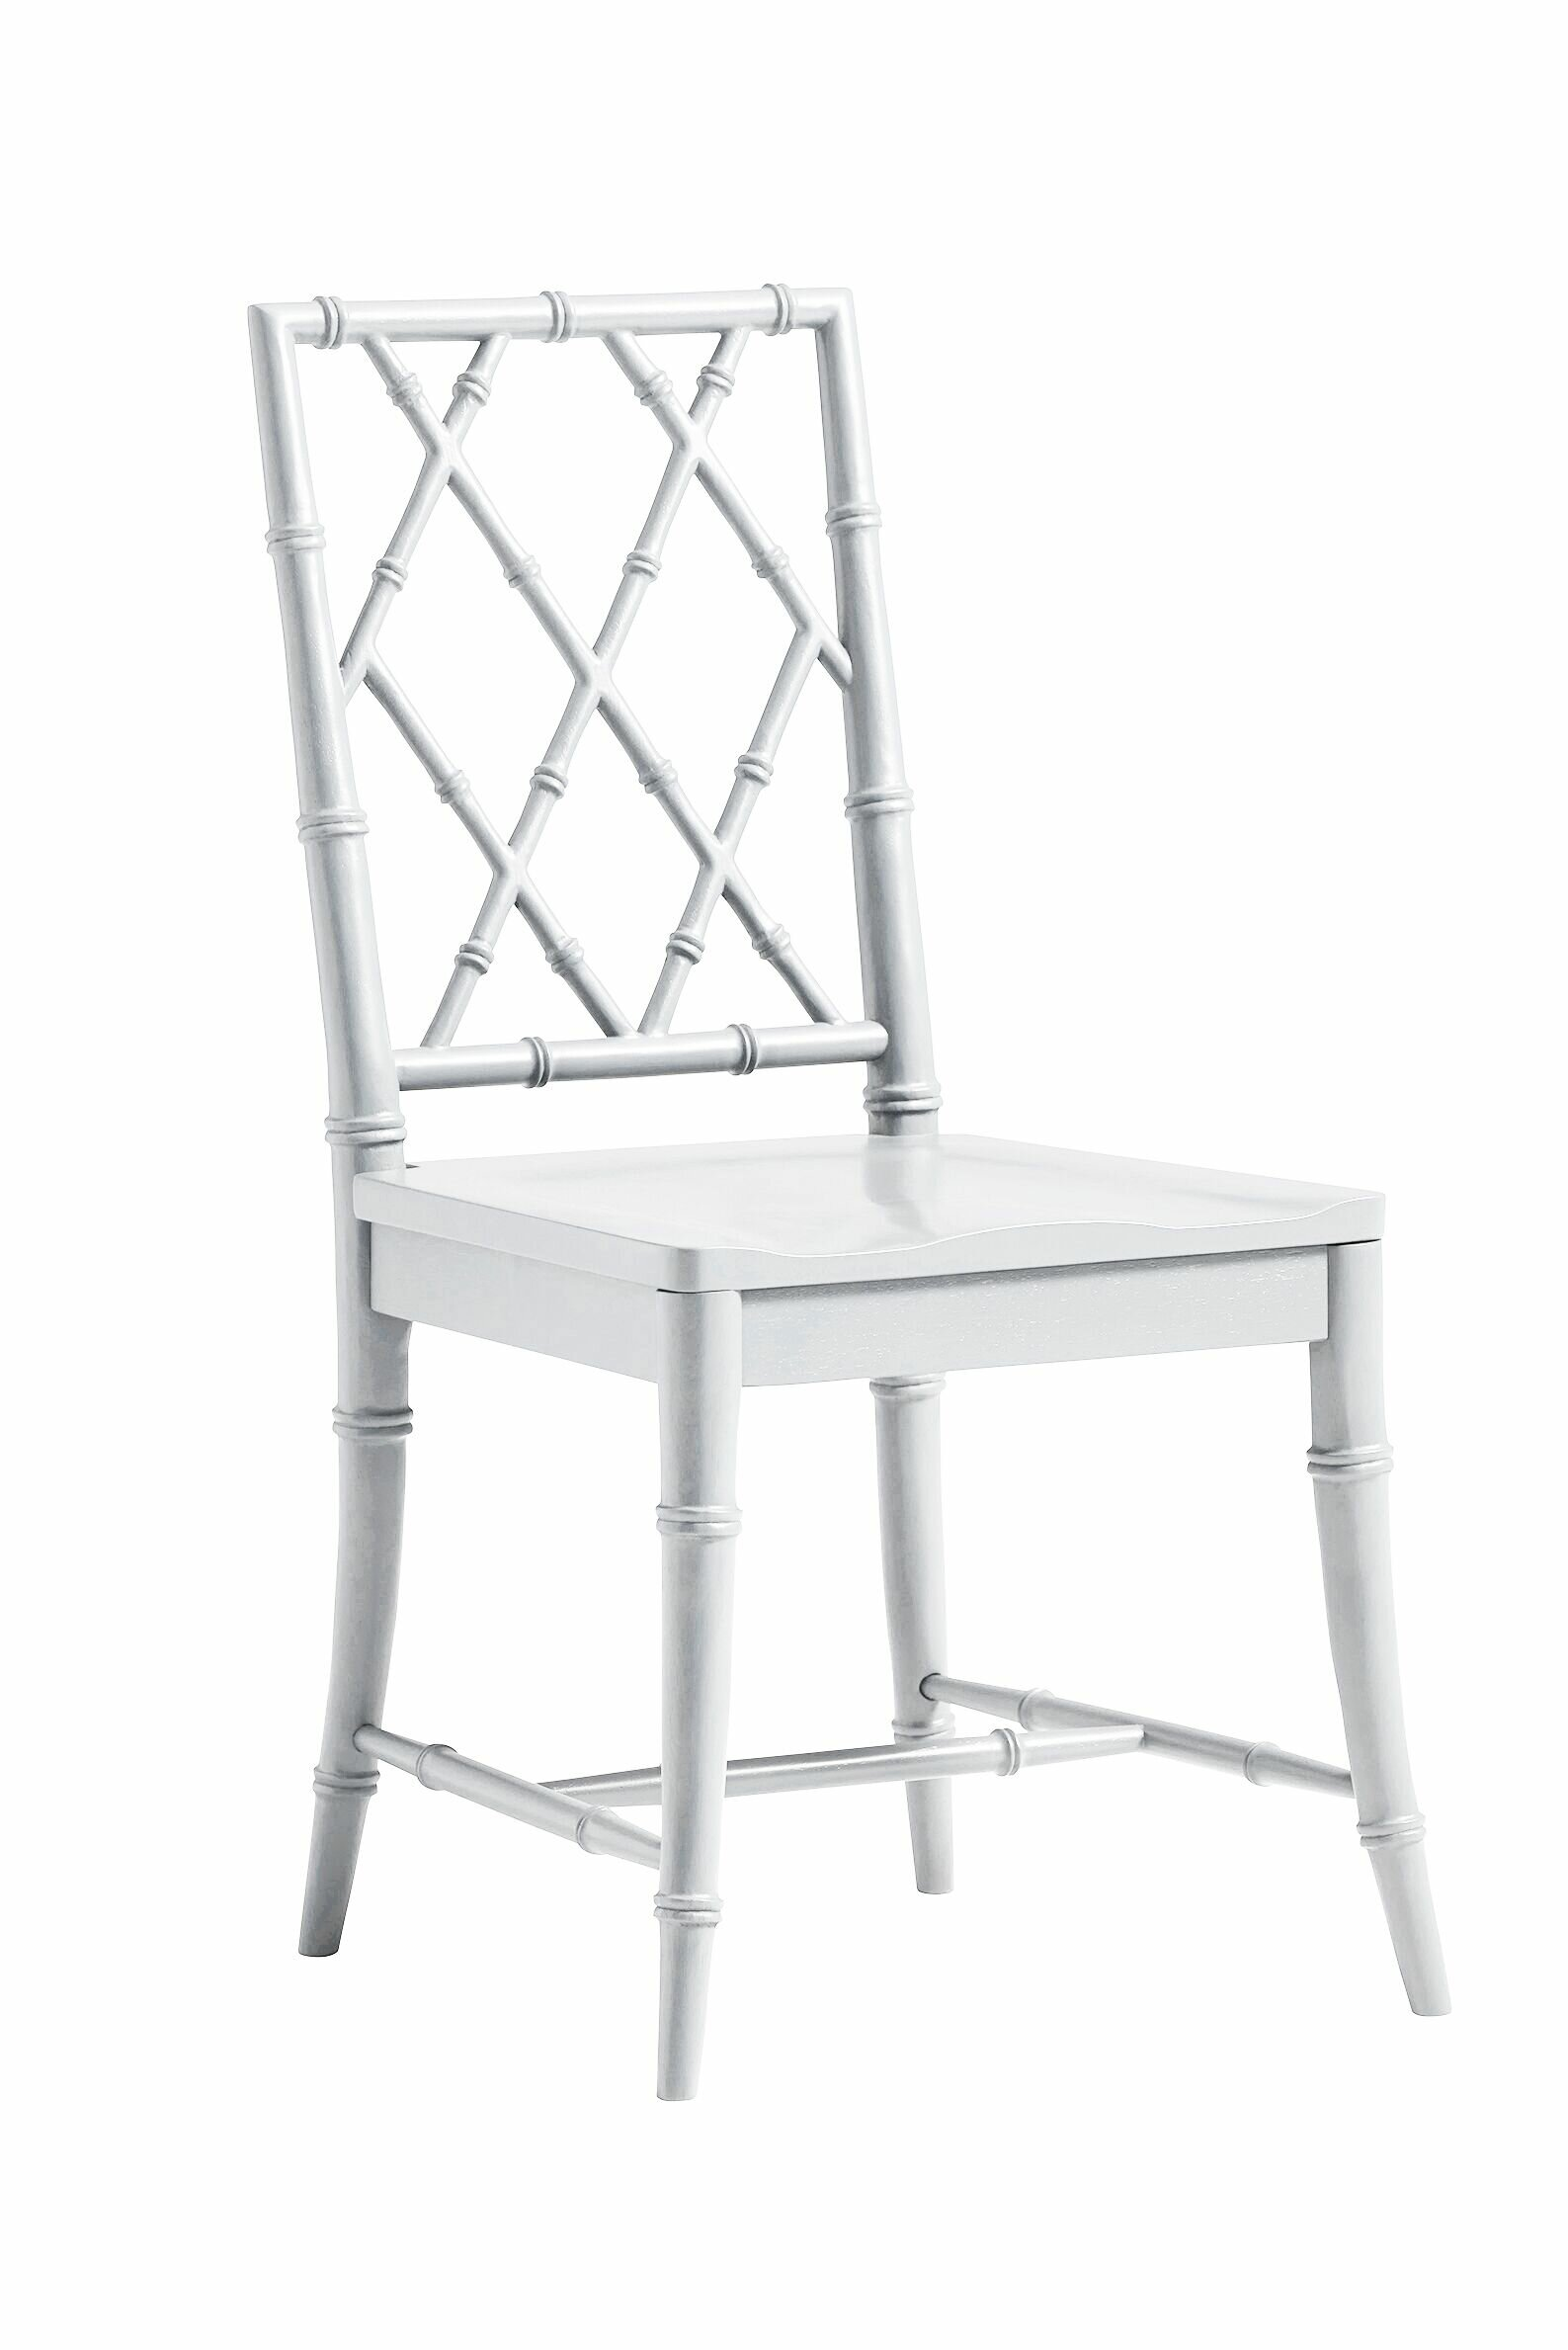 Wondrous Solid Wood Dining Chair Ibusinesslaw Wood Chair Design Ideas Ibusinesslaworg